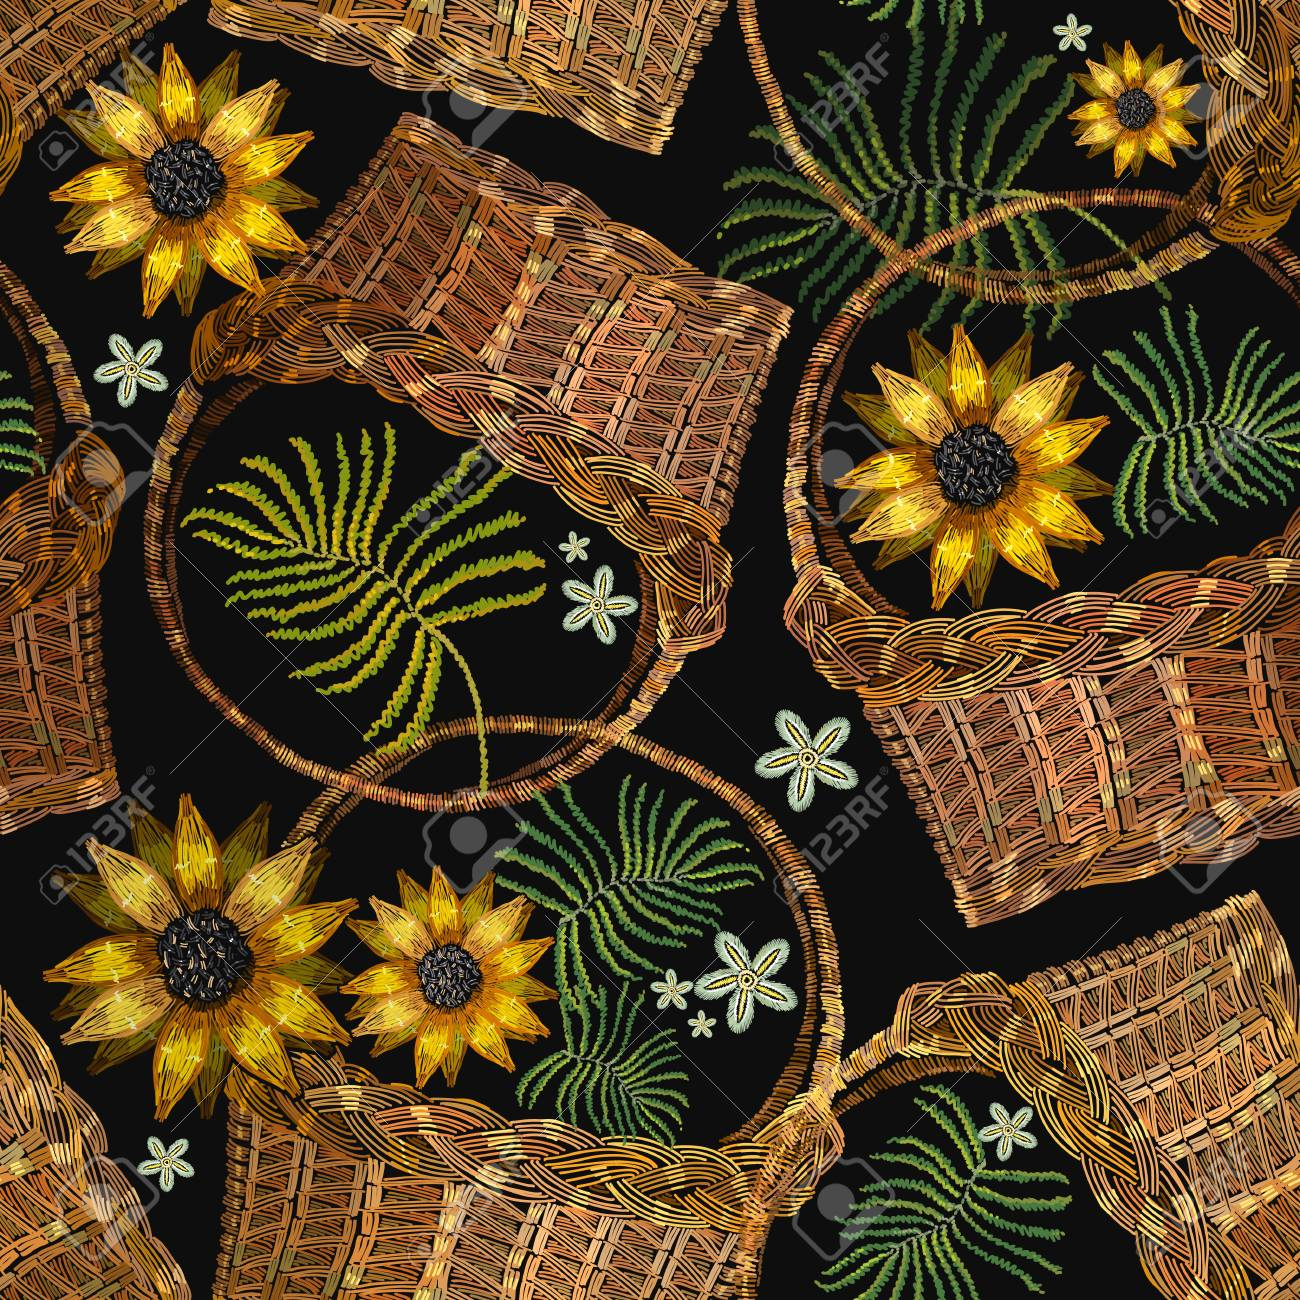 Embroidery Wicker Baskets And Sunflowers Garden Background Template For Clothes Textiles T